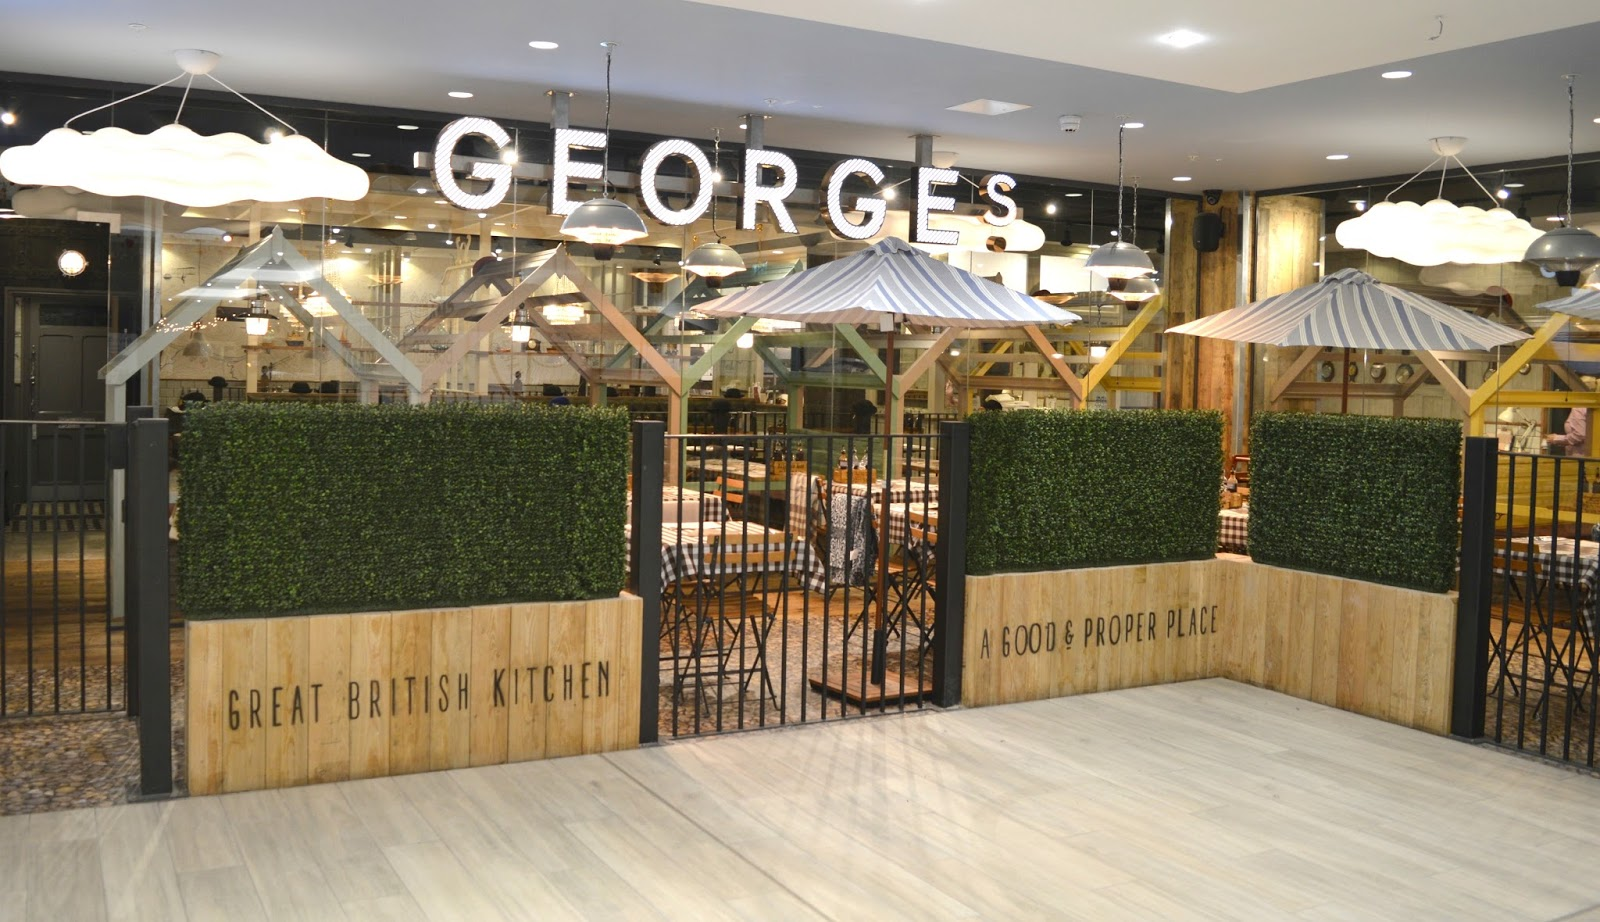 Intu Eldon Square: Grey's Quarter - George's Great British Kitchen